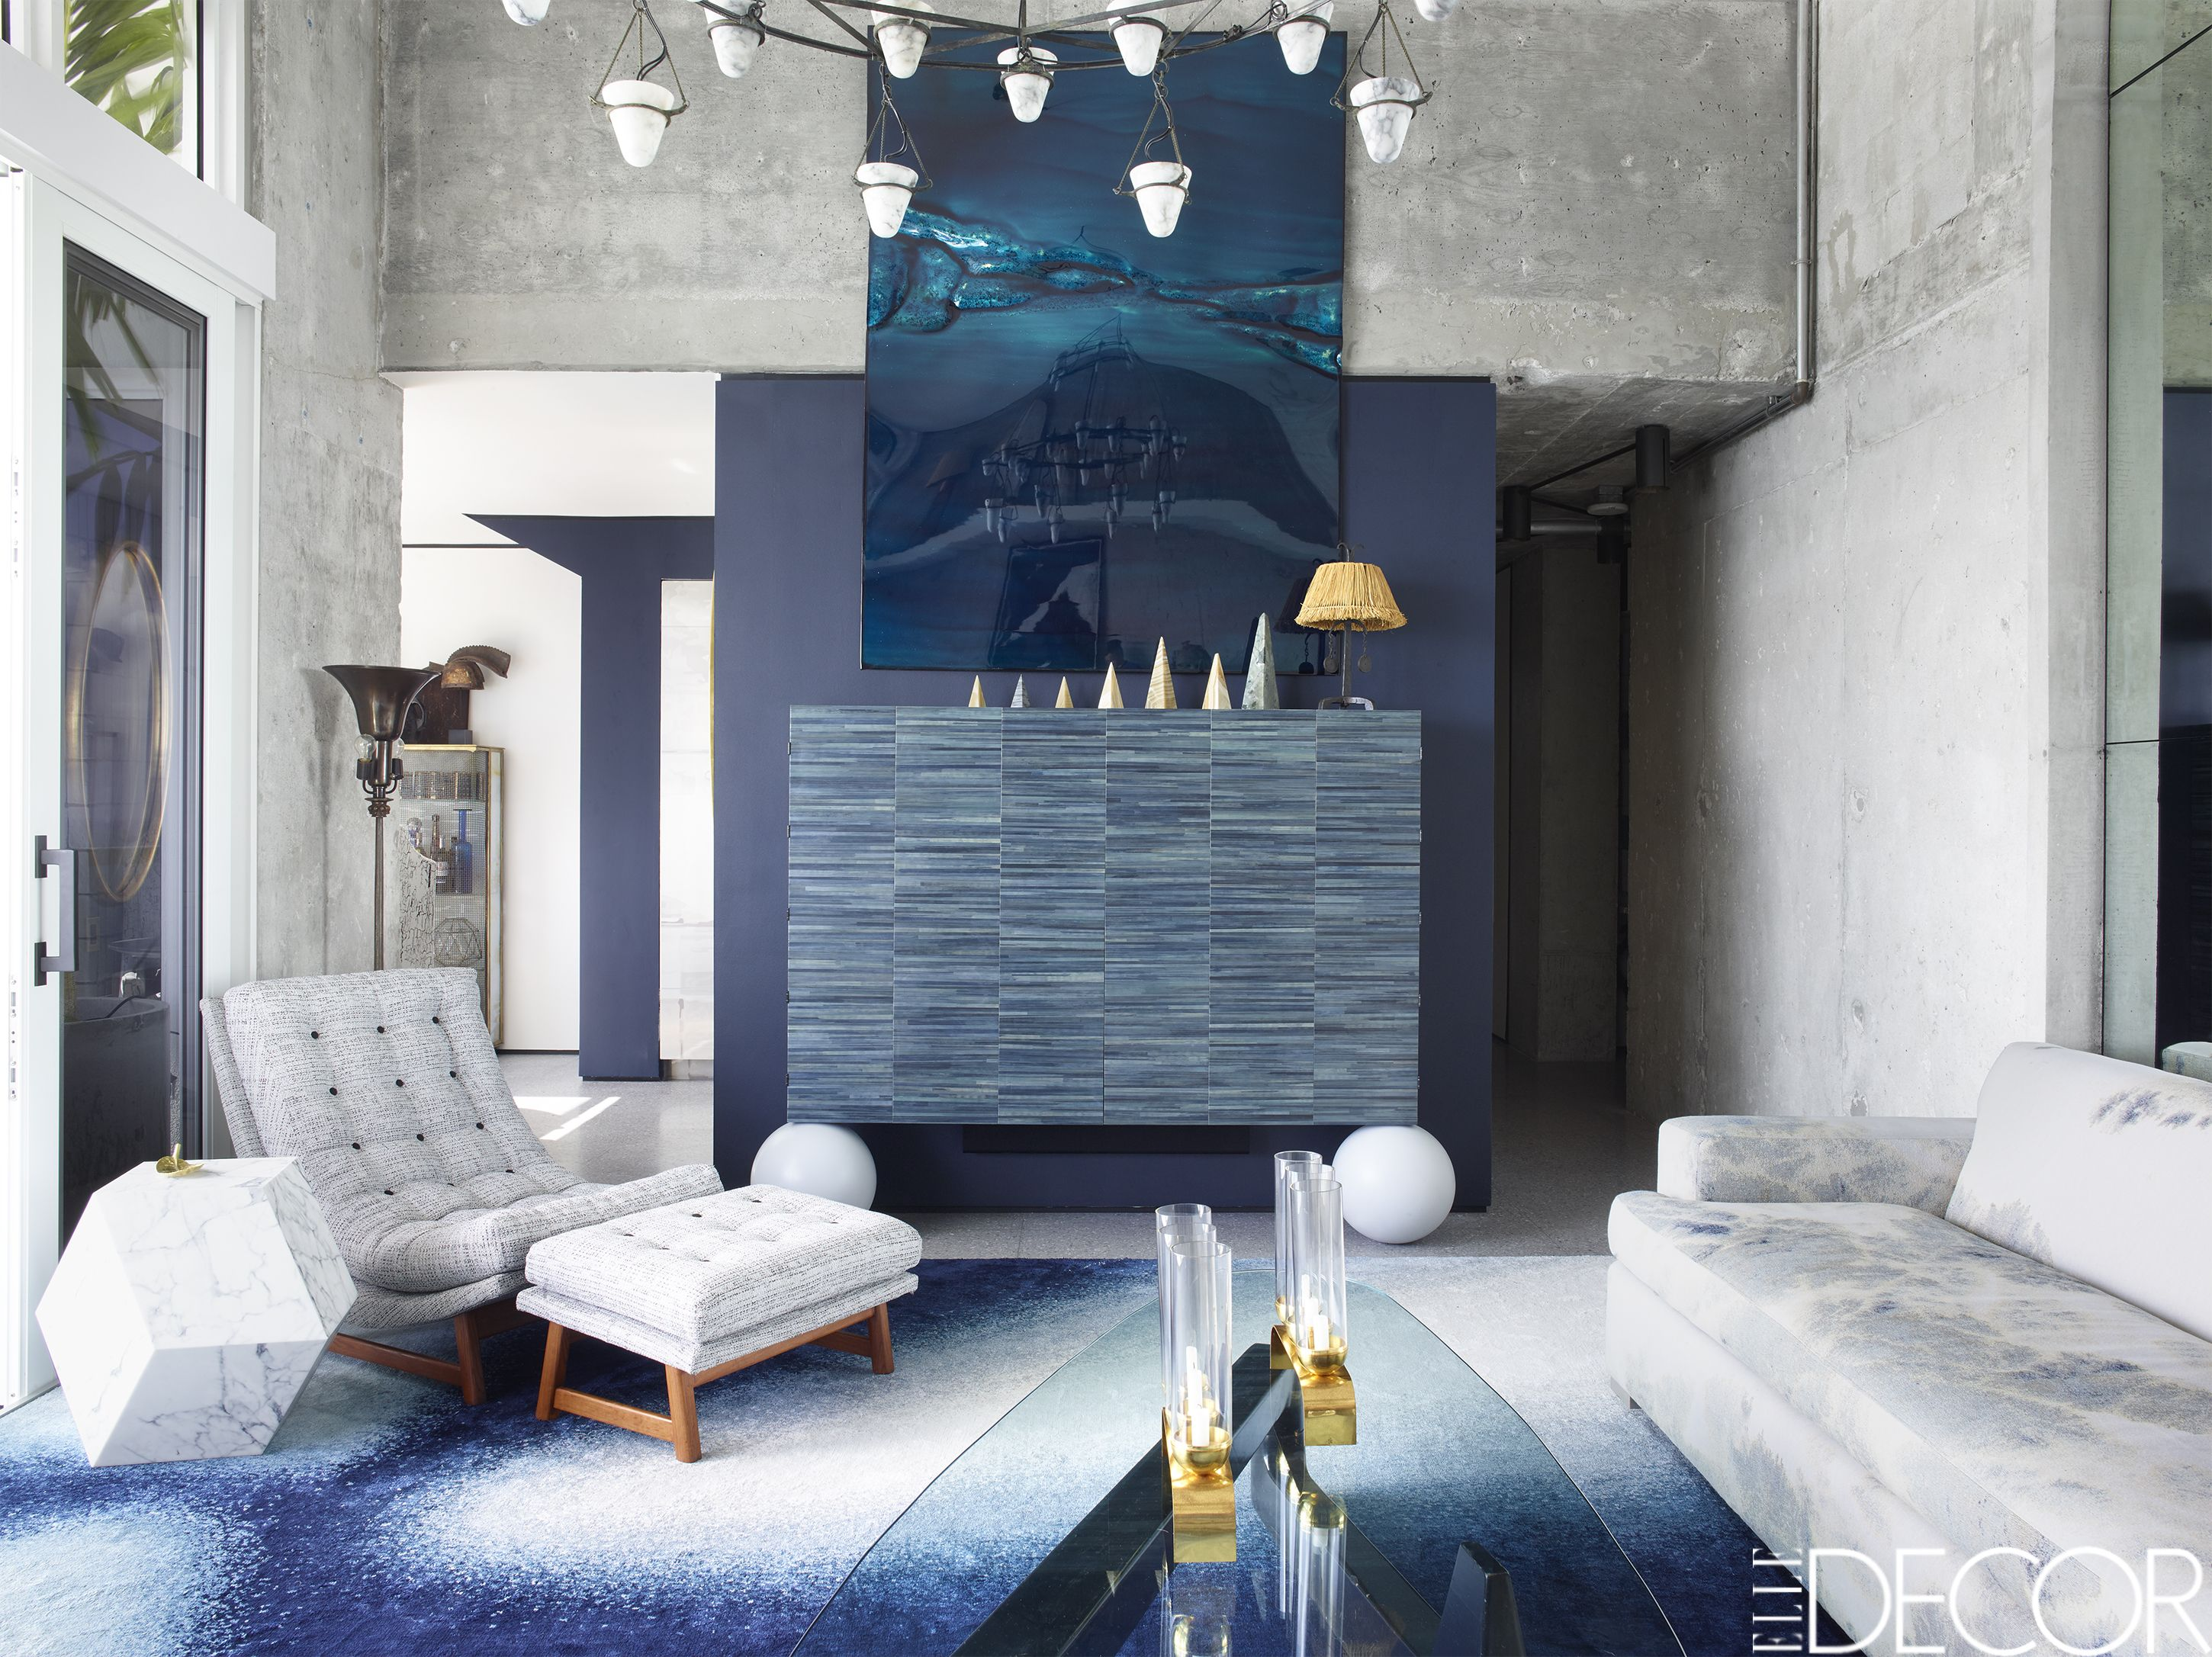 living room rugs modern bohemian decor 40 rug ideas stylish area for rooms to instantly transform your space